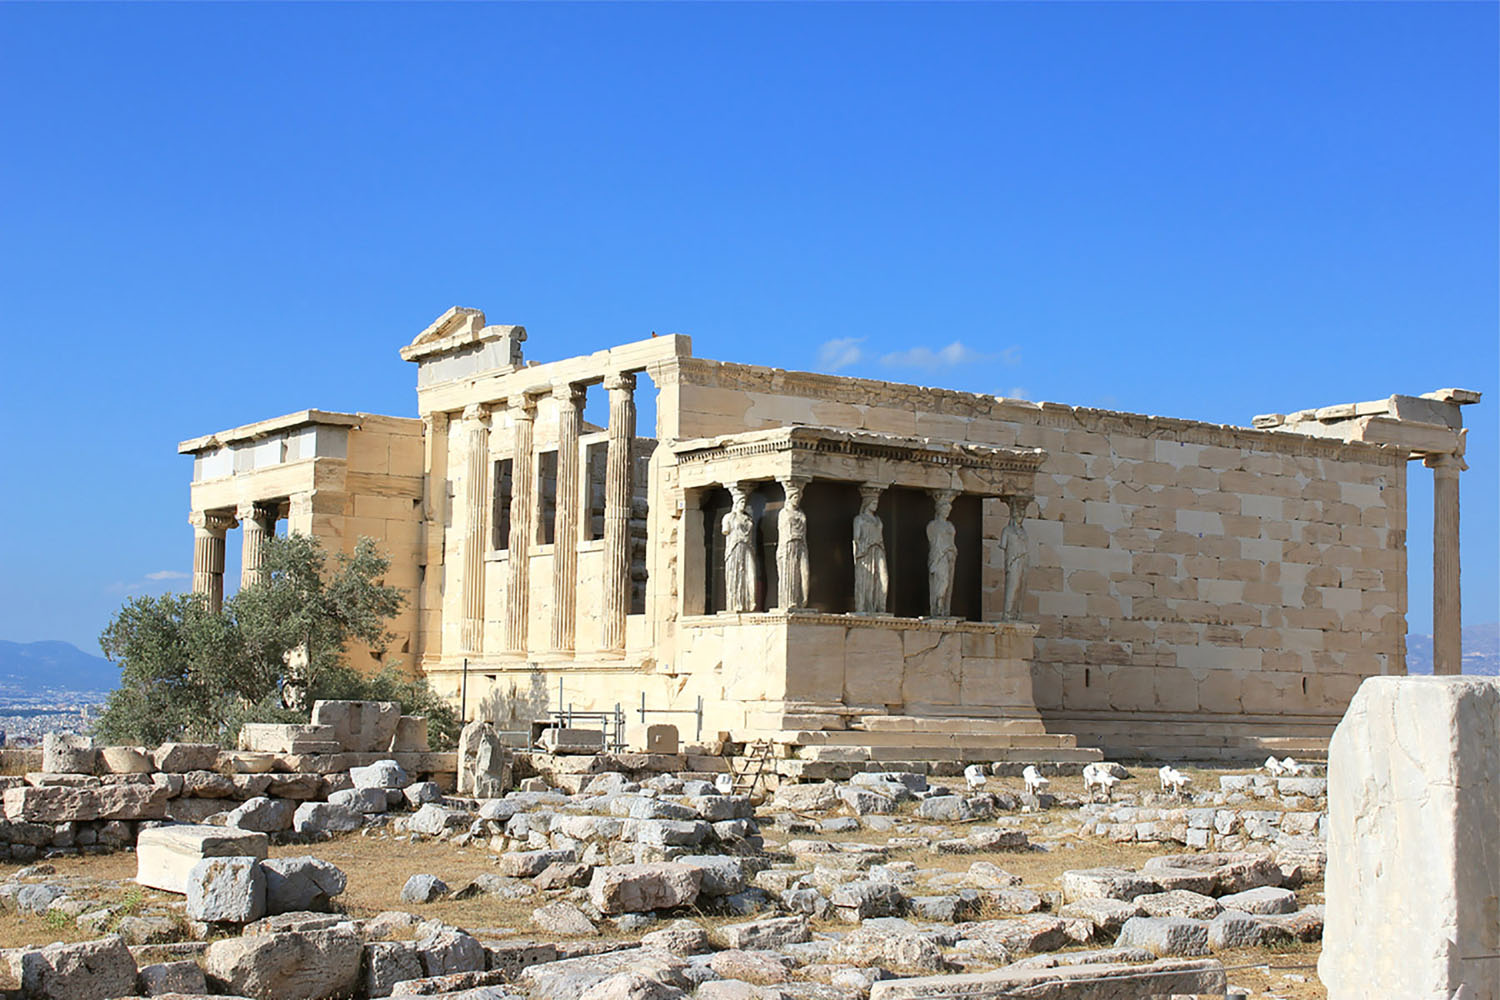 ettled over 3,500 years ago, Athens is like a mythological crossroads of the past and present, where modern buildings share the skyline with spectacular ruins like the Parthenon.